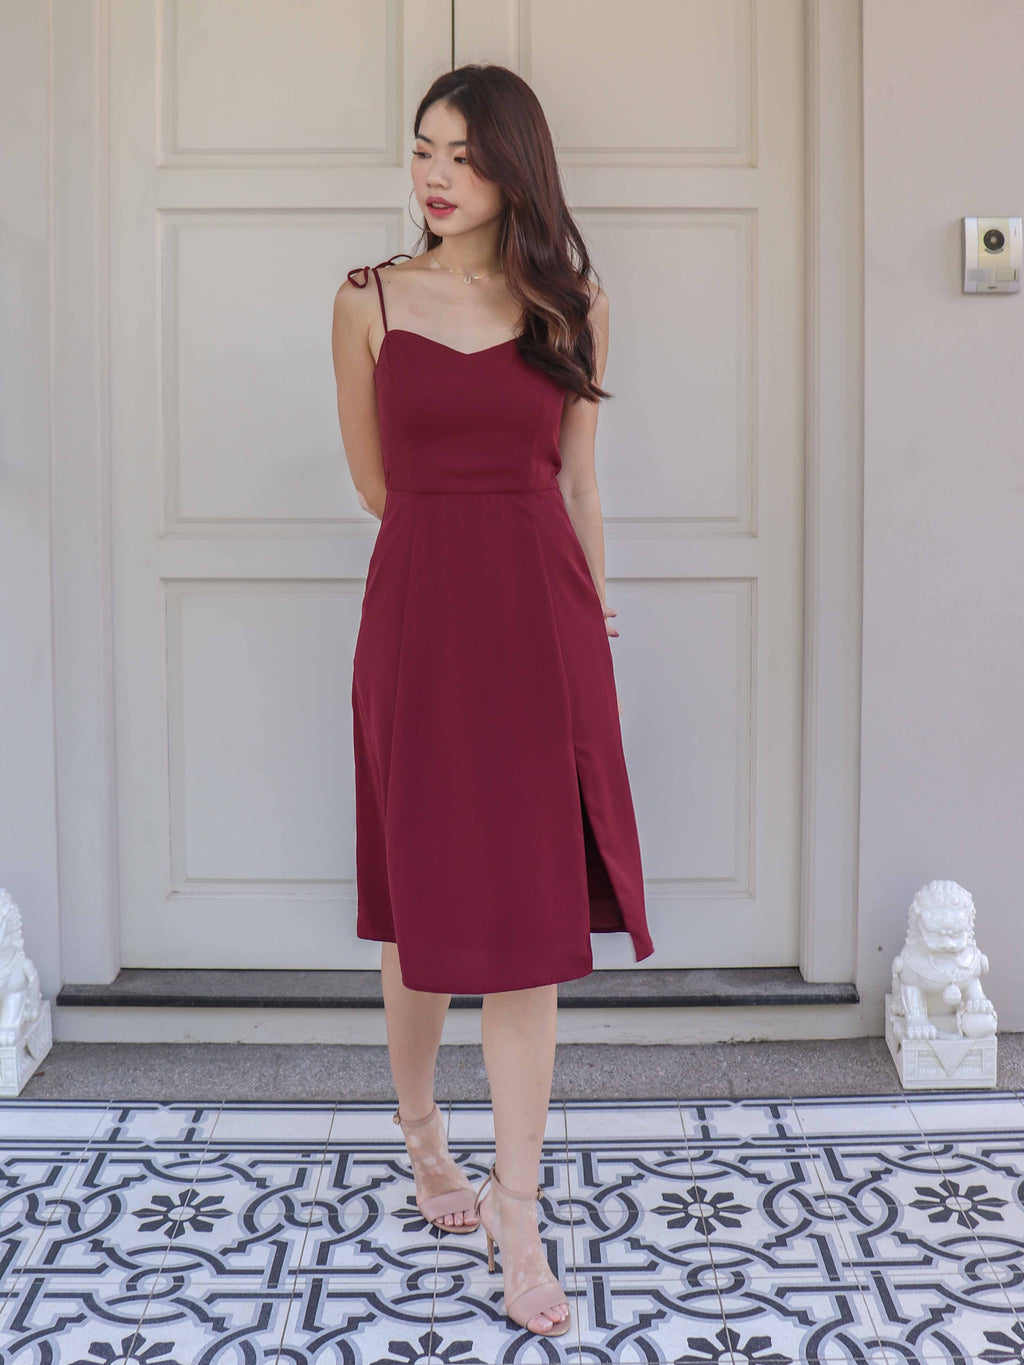 Monet Essential Tie String Slit Dress in Maroon